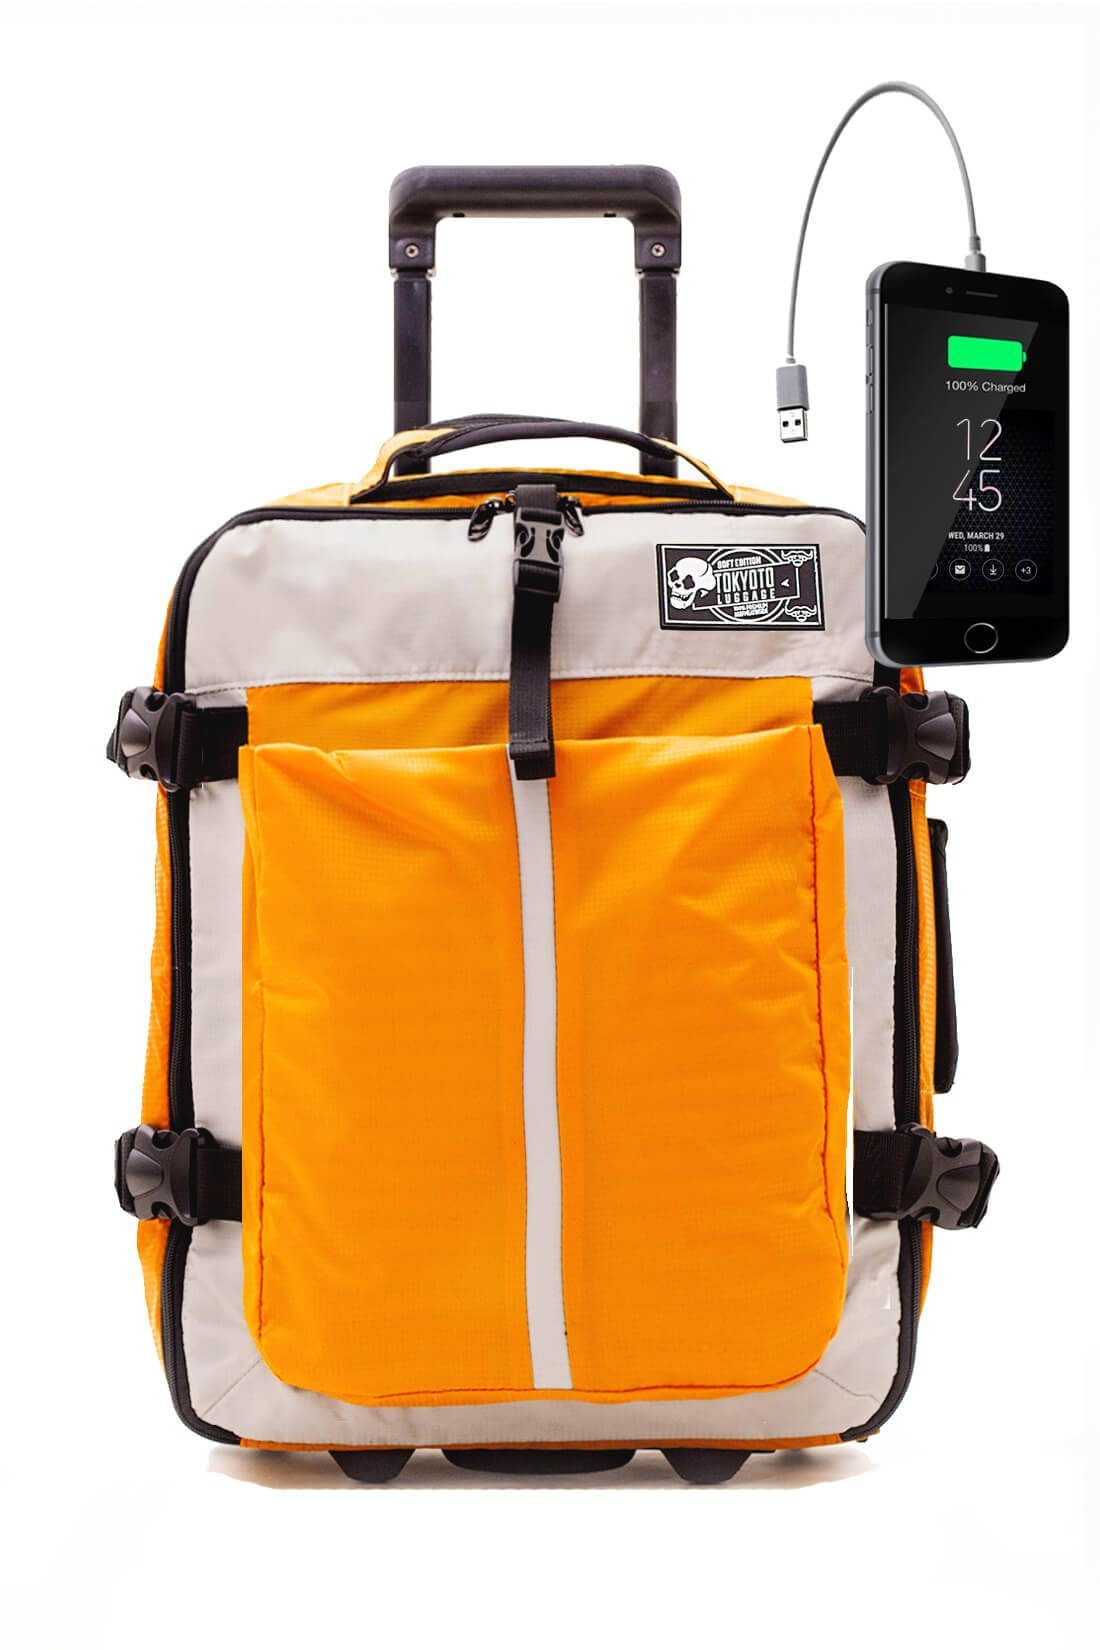 Kids Hand Trolley Cabin Luggage Suitcase Online Powerbank USB SOFT YELLOW